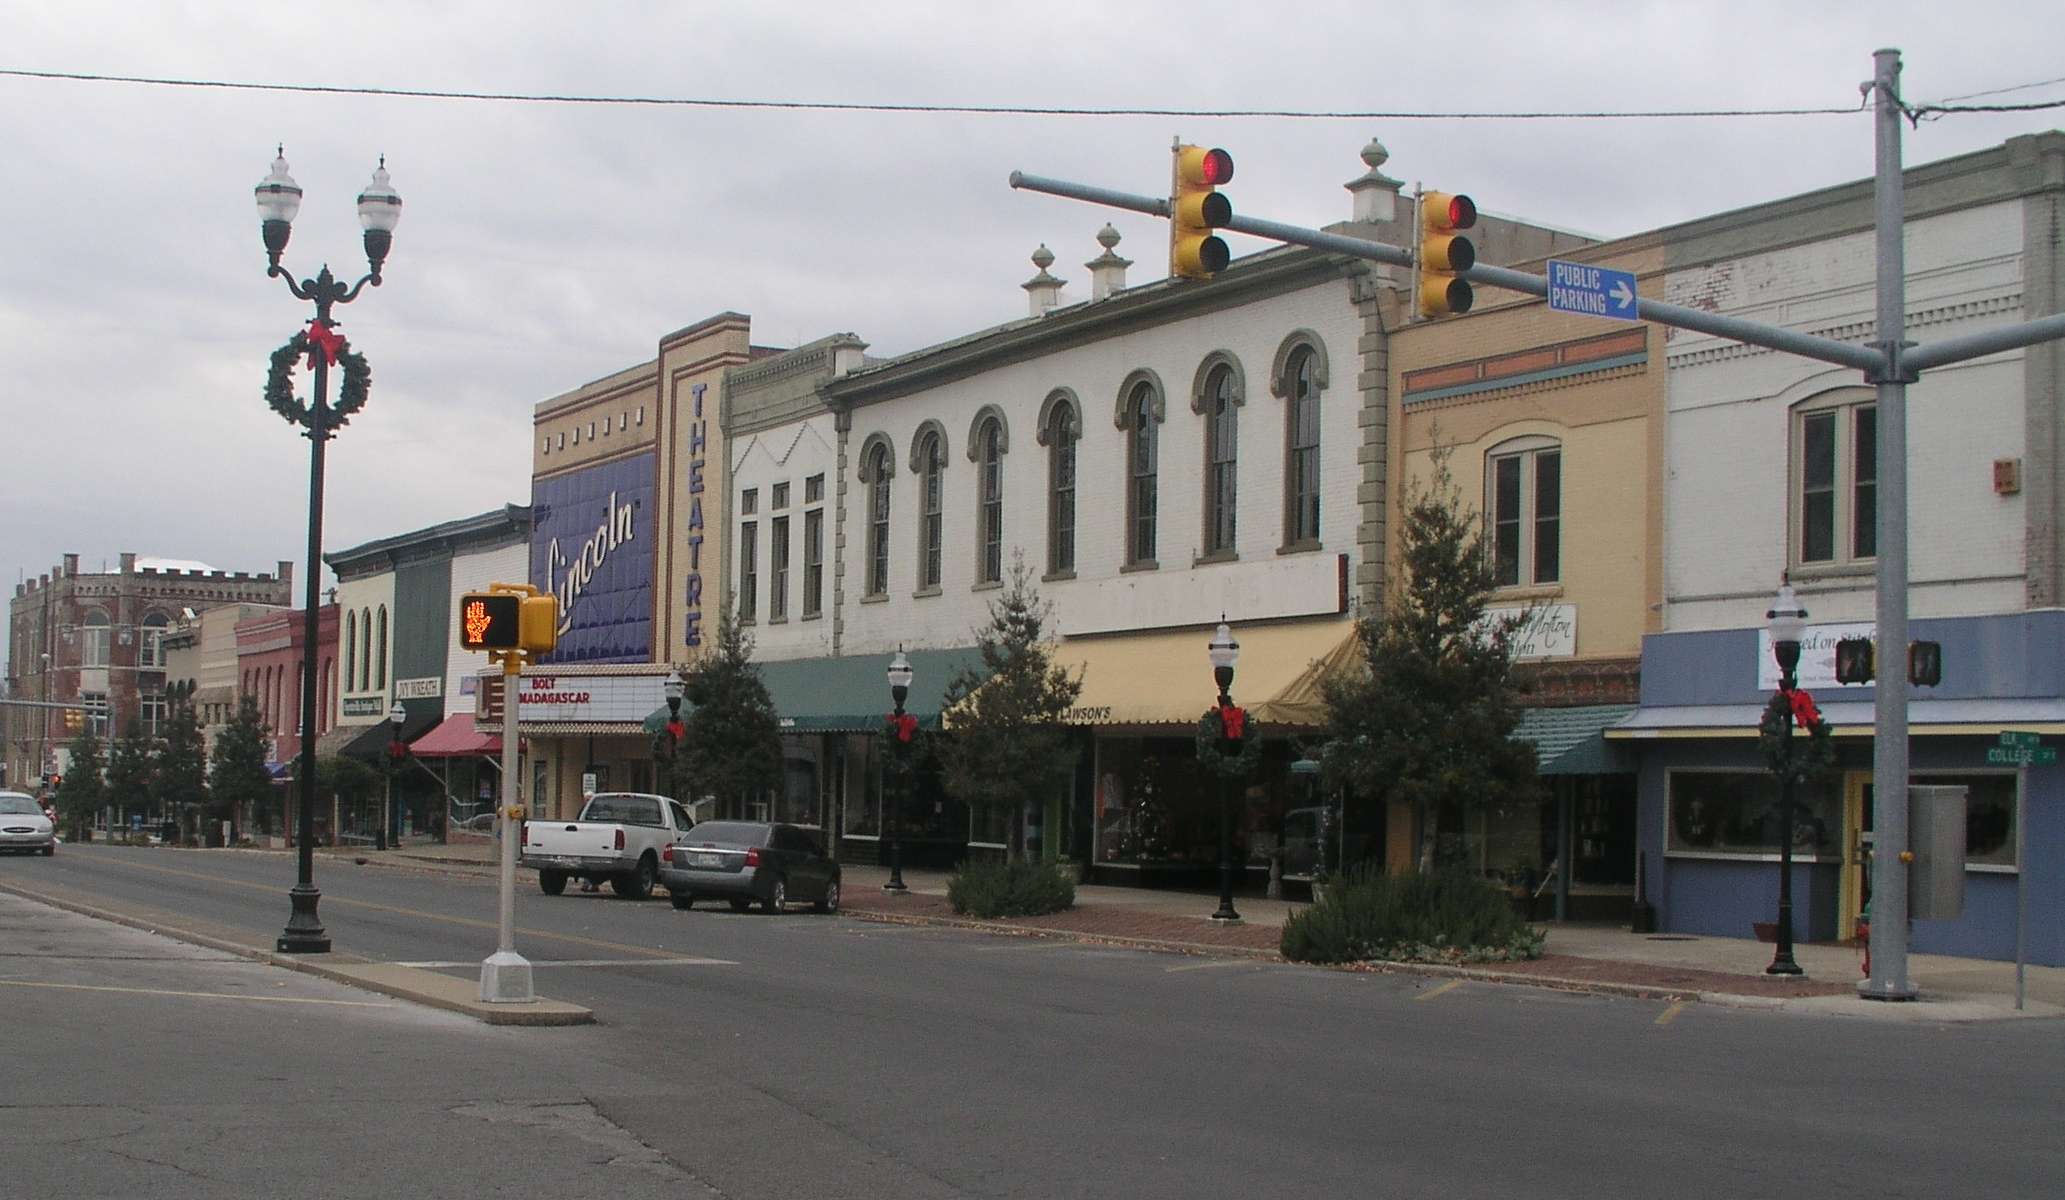 Fayetteville (TN) United States  city photos gallery : Fayetteville Tennessee square Wikimedia Commons